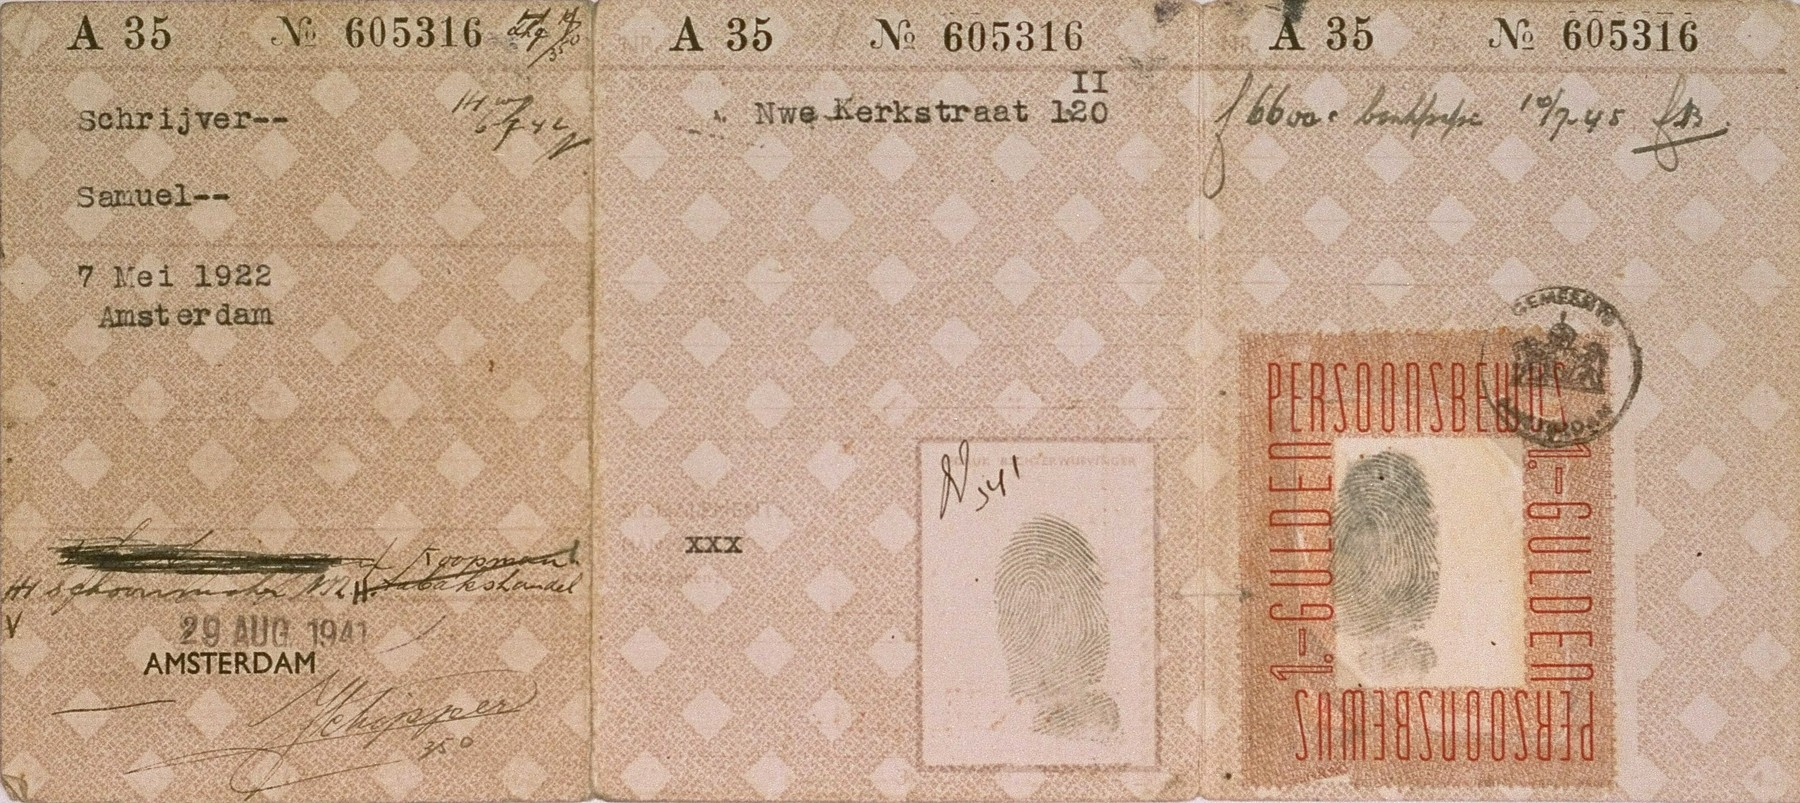 An identification document issued to Samuel Schrijver while he was working as an orderly at the Jewish hospital in Amsterdam.